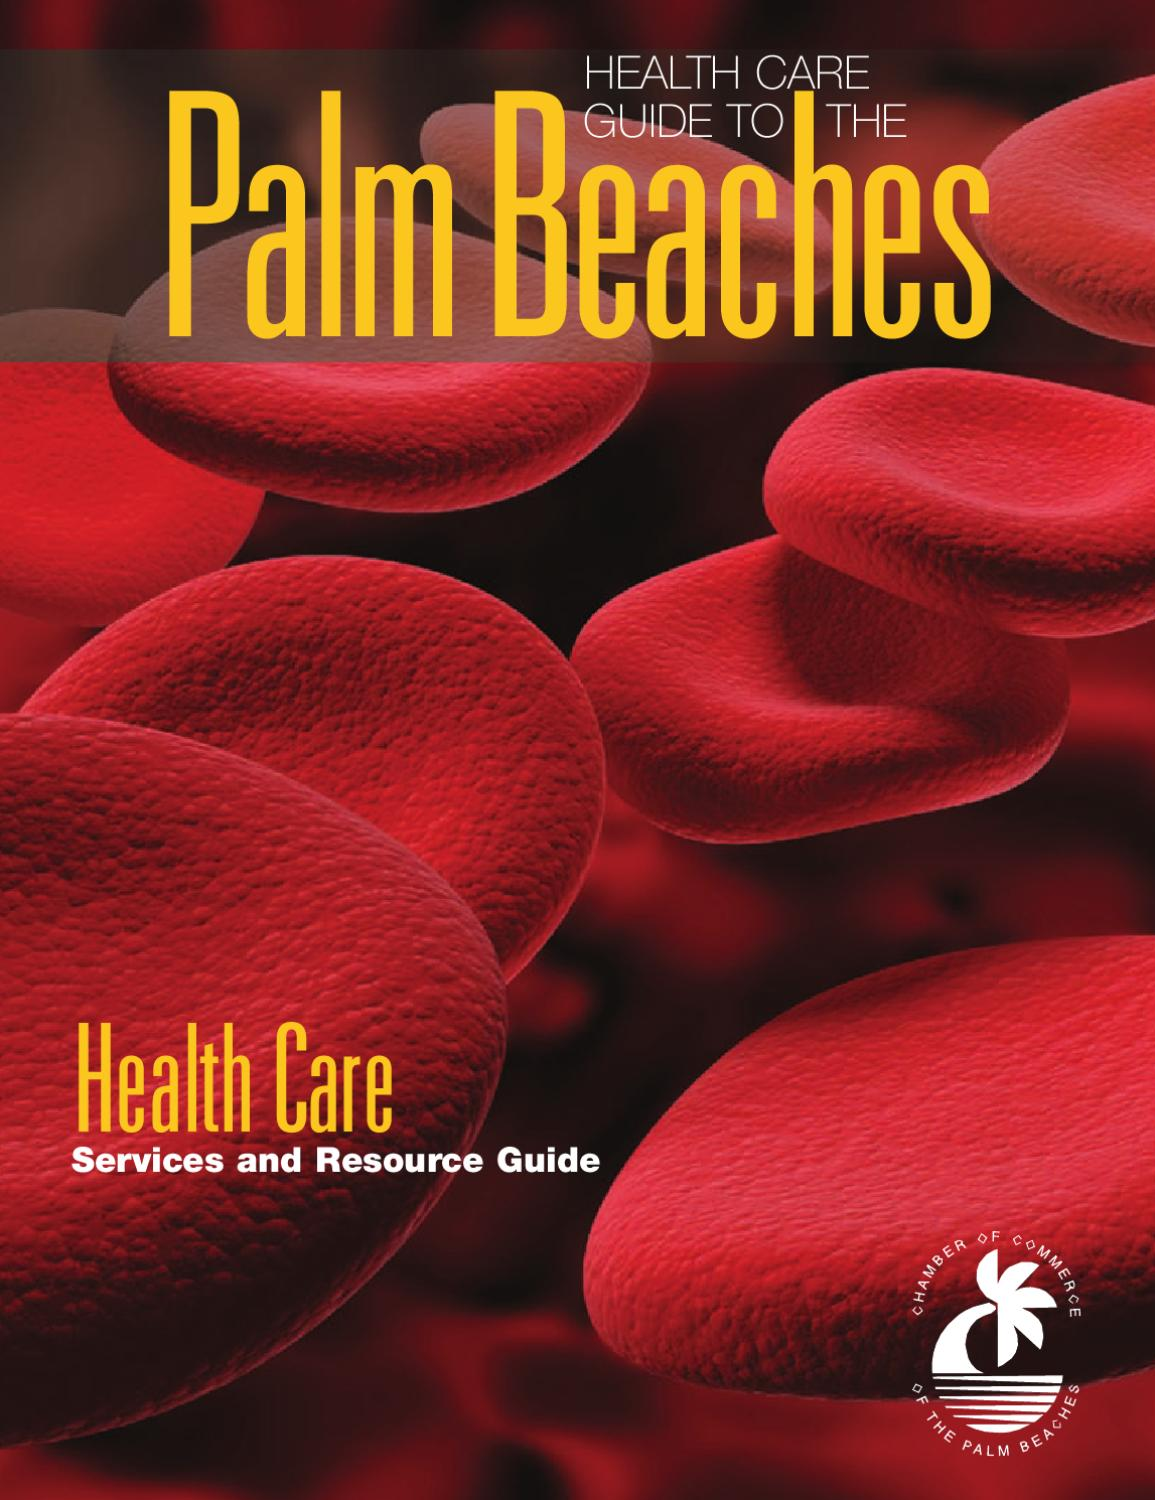 Healthgrades 50 Best Hospitals 2016: 2011 Health Care Guide To The Palm Beaches By Chamber Of